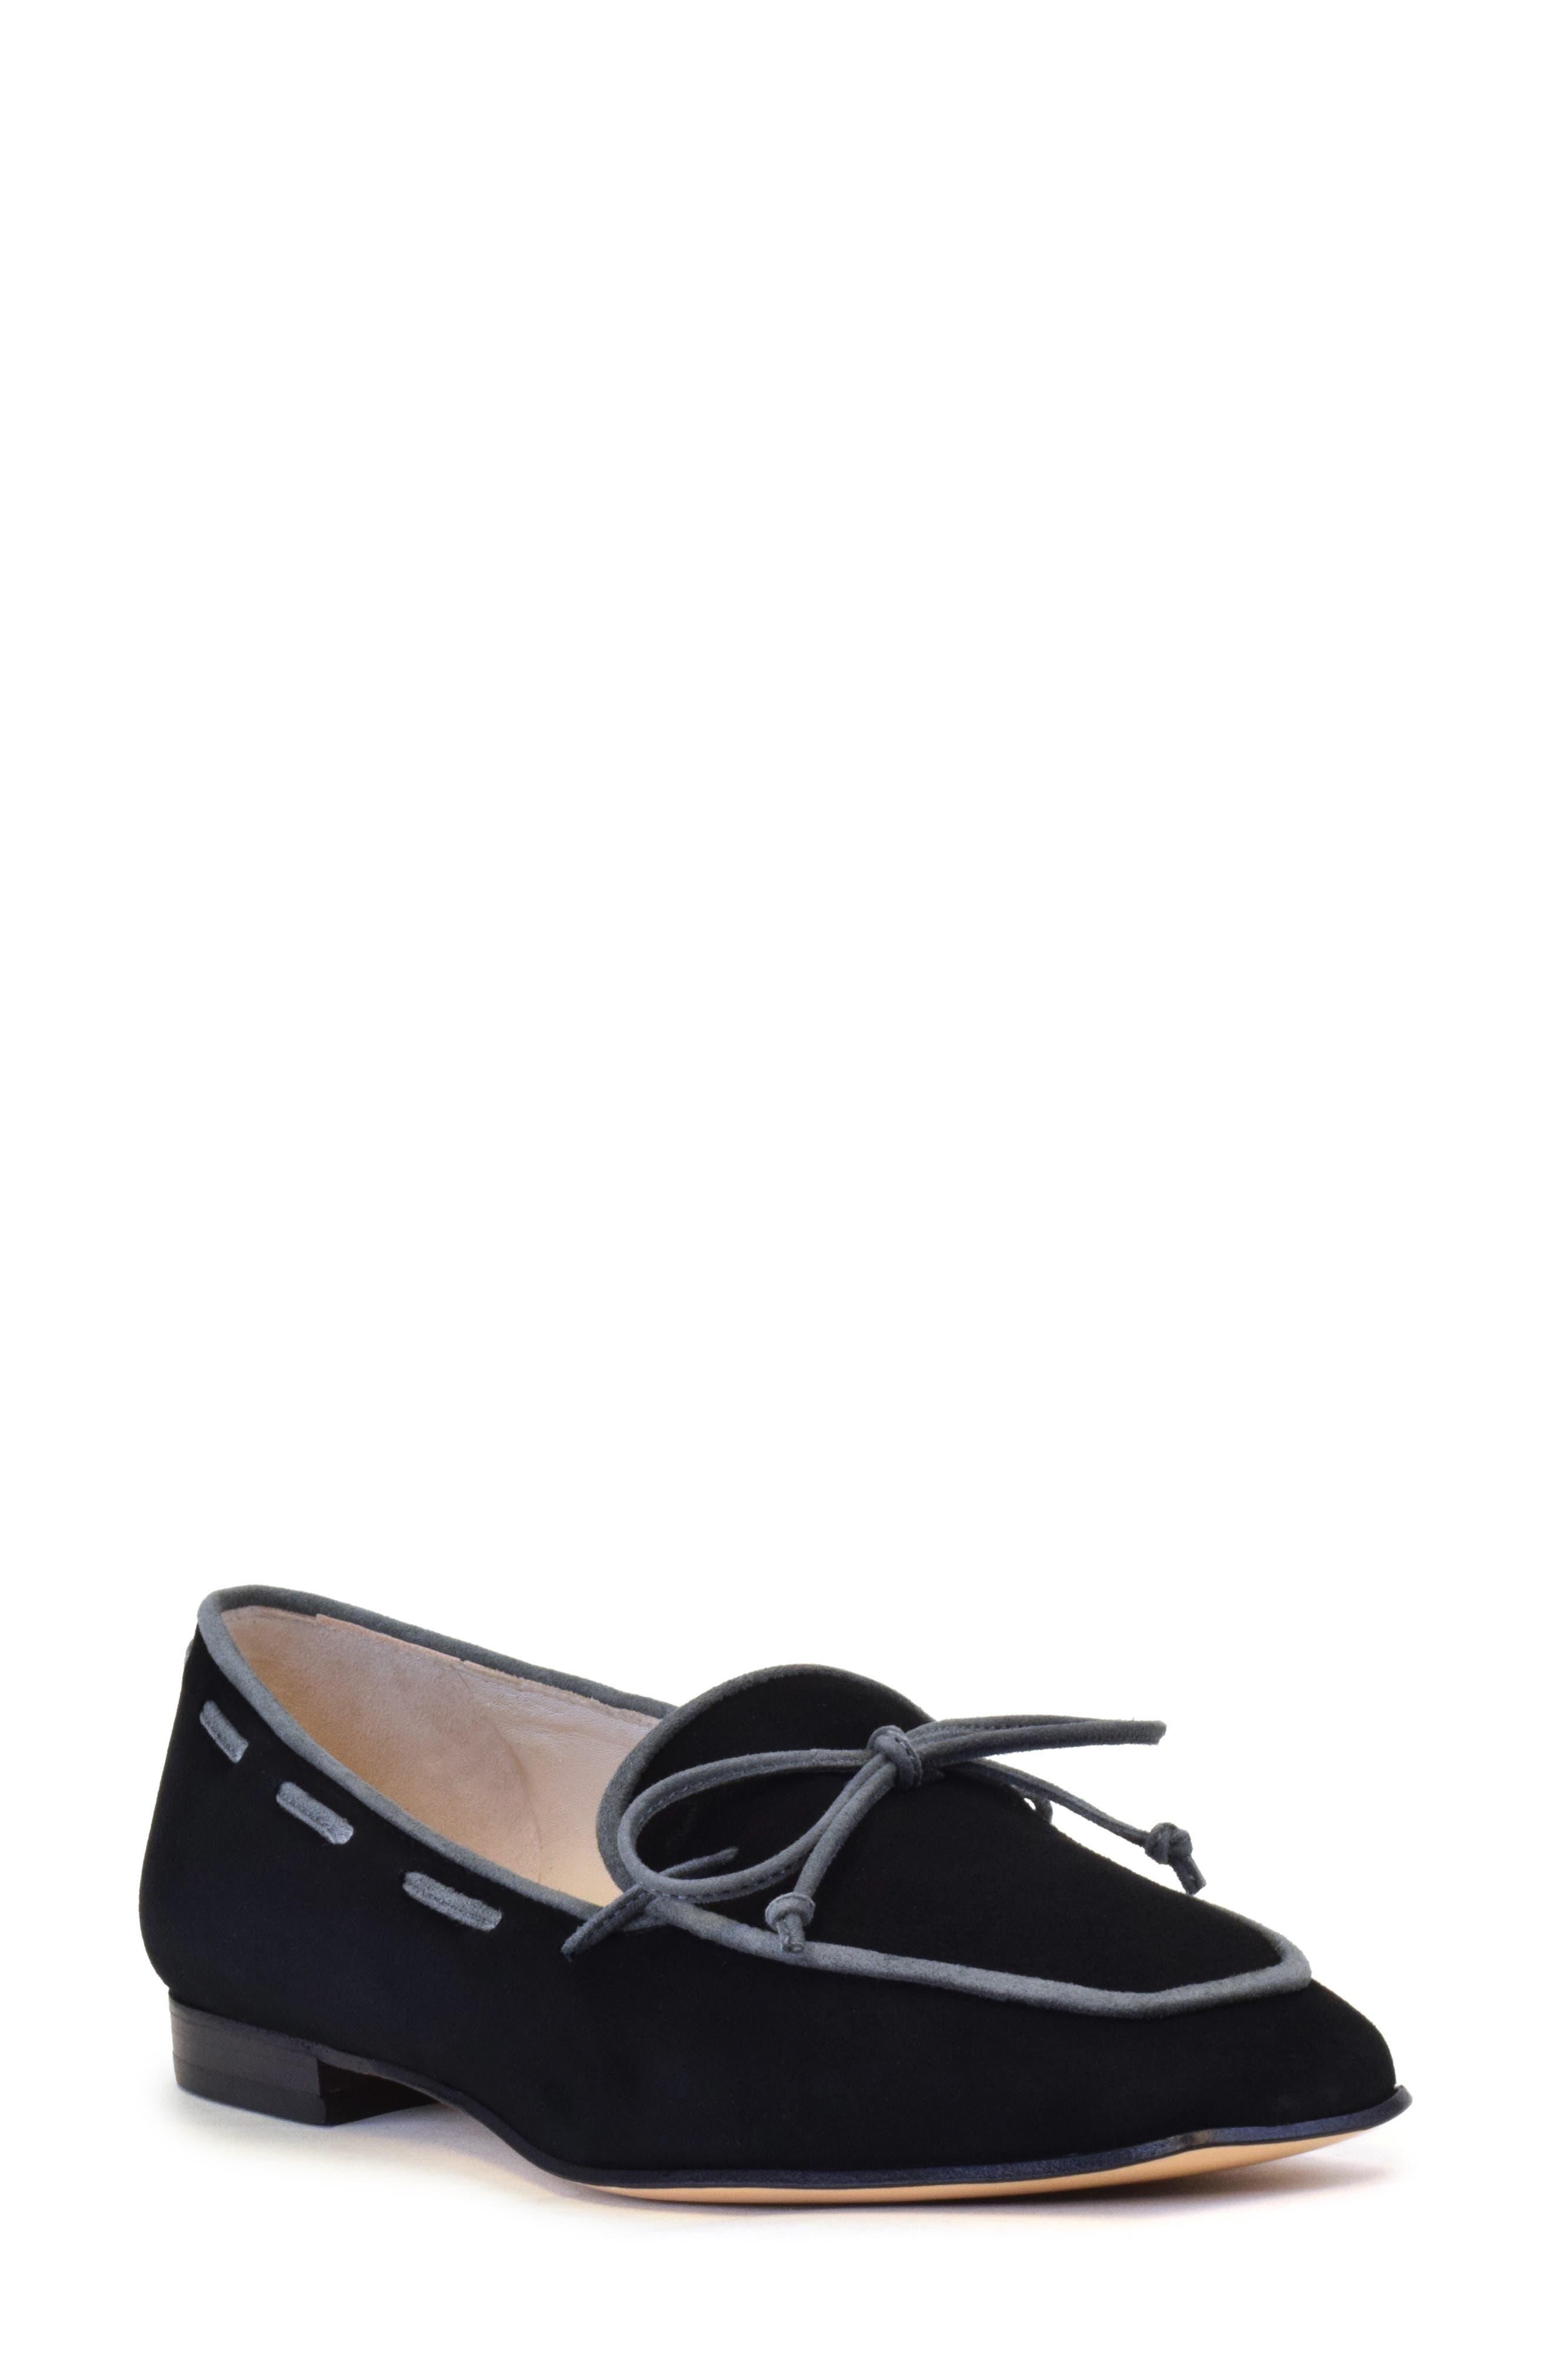 Piping trim and a bow polish this velvety-smooth Italian-crafted loafer designed with a low heel, plush padding and a nonskid sole. Style Name: Amalfi By Rangoni Genio Loafer (Women). Style Number: 6103472. Available in stores.